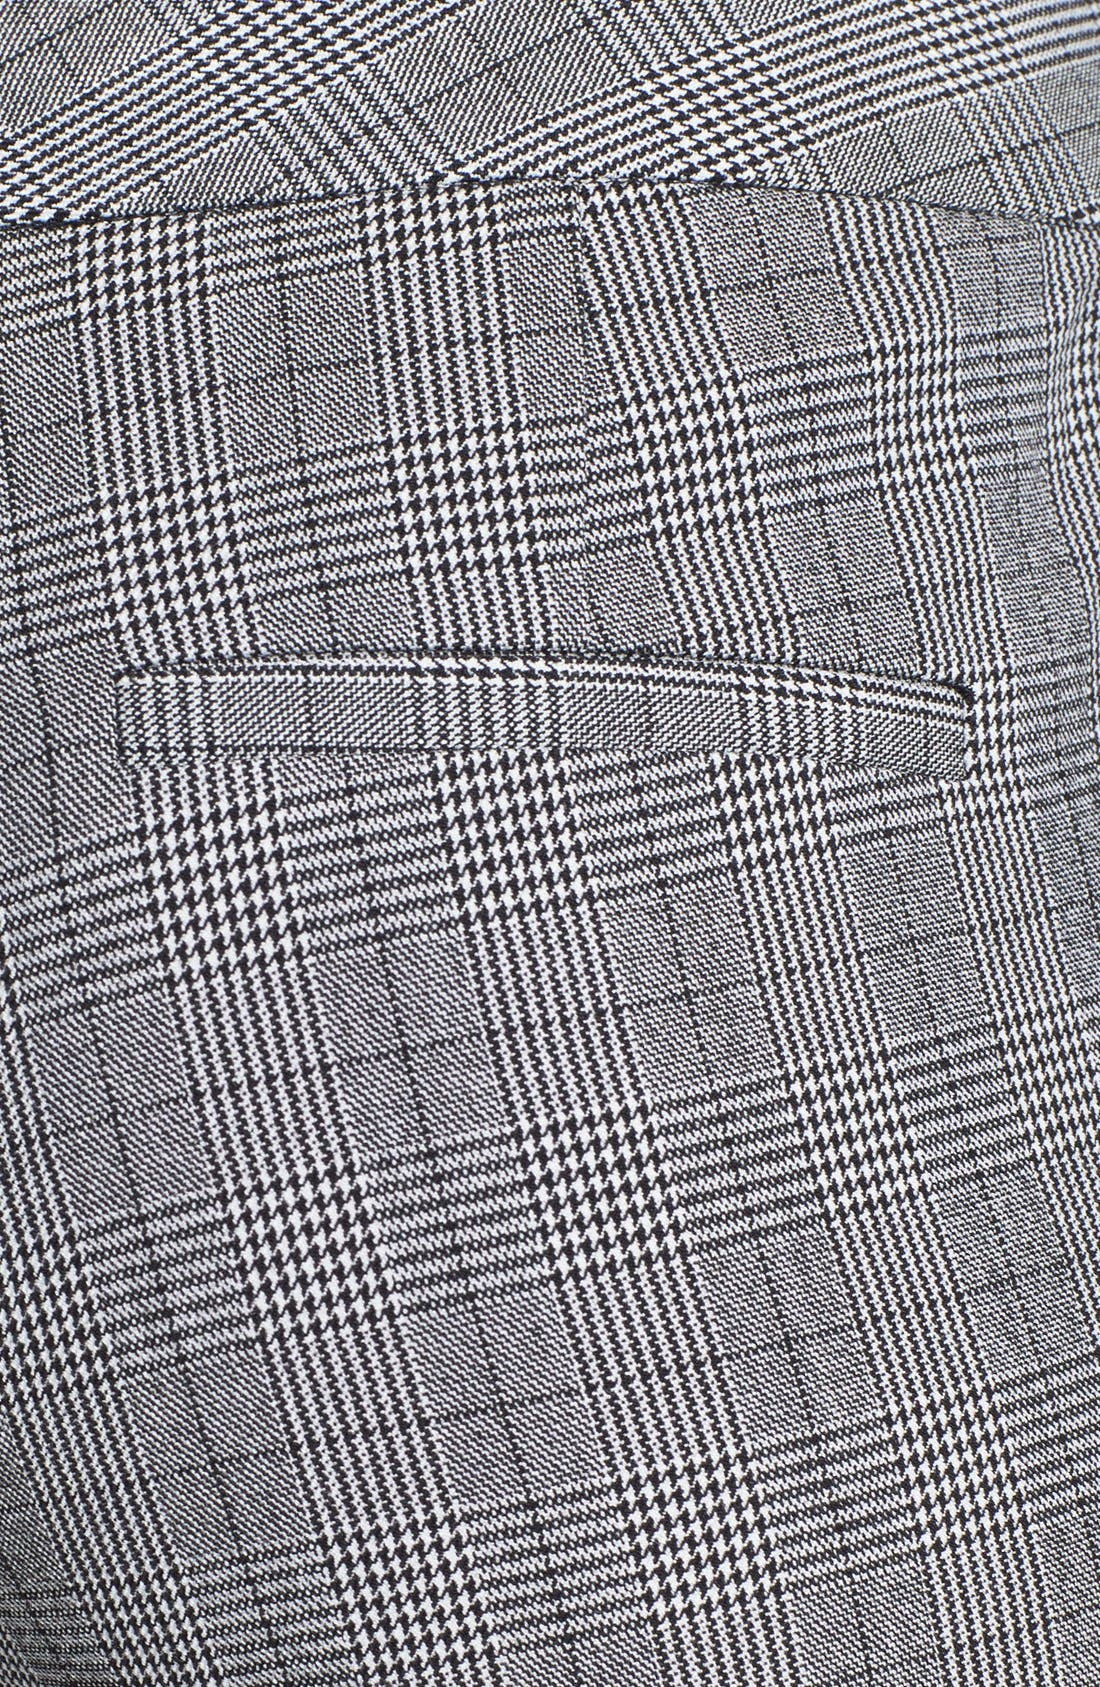 Alternate Image 3  - Vince Camuto Faux Leather Stripe Glen Plaid Trousers (Online Exclusive)